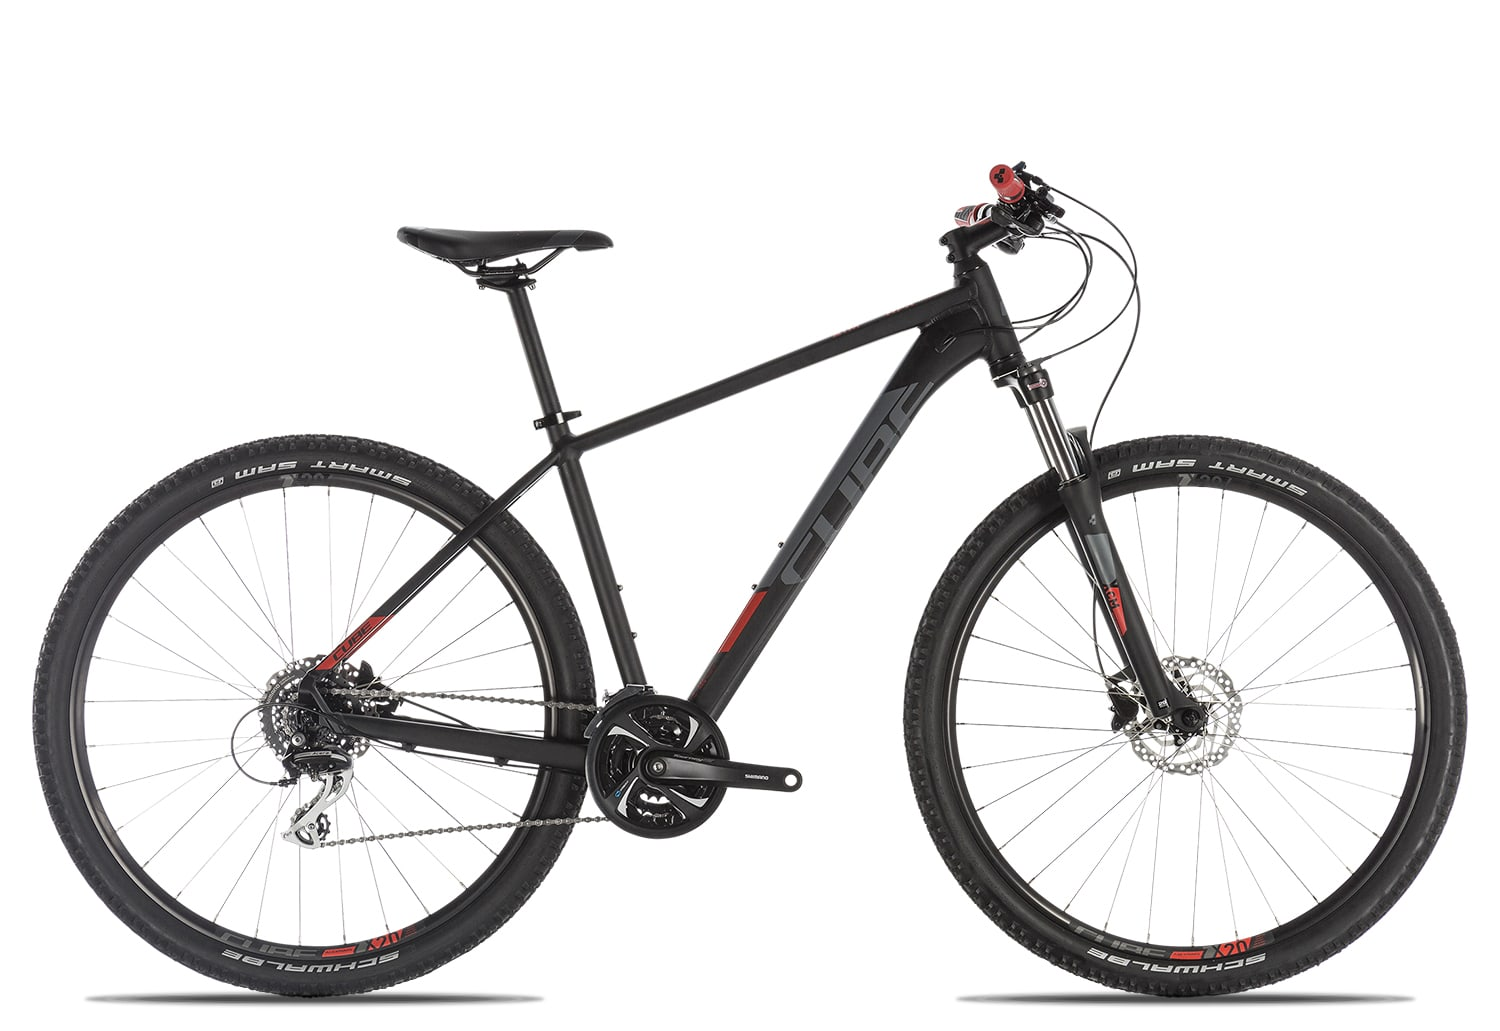 Cube Aim Race 2019 16 Zoll | black'n'red | 27.5 Zoll